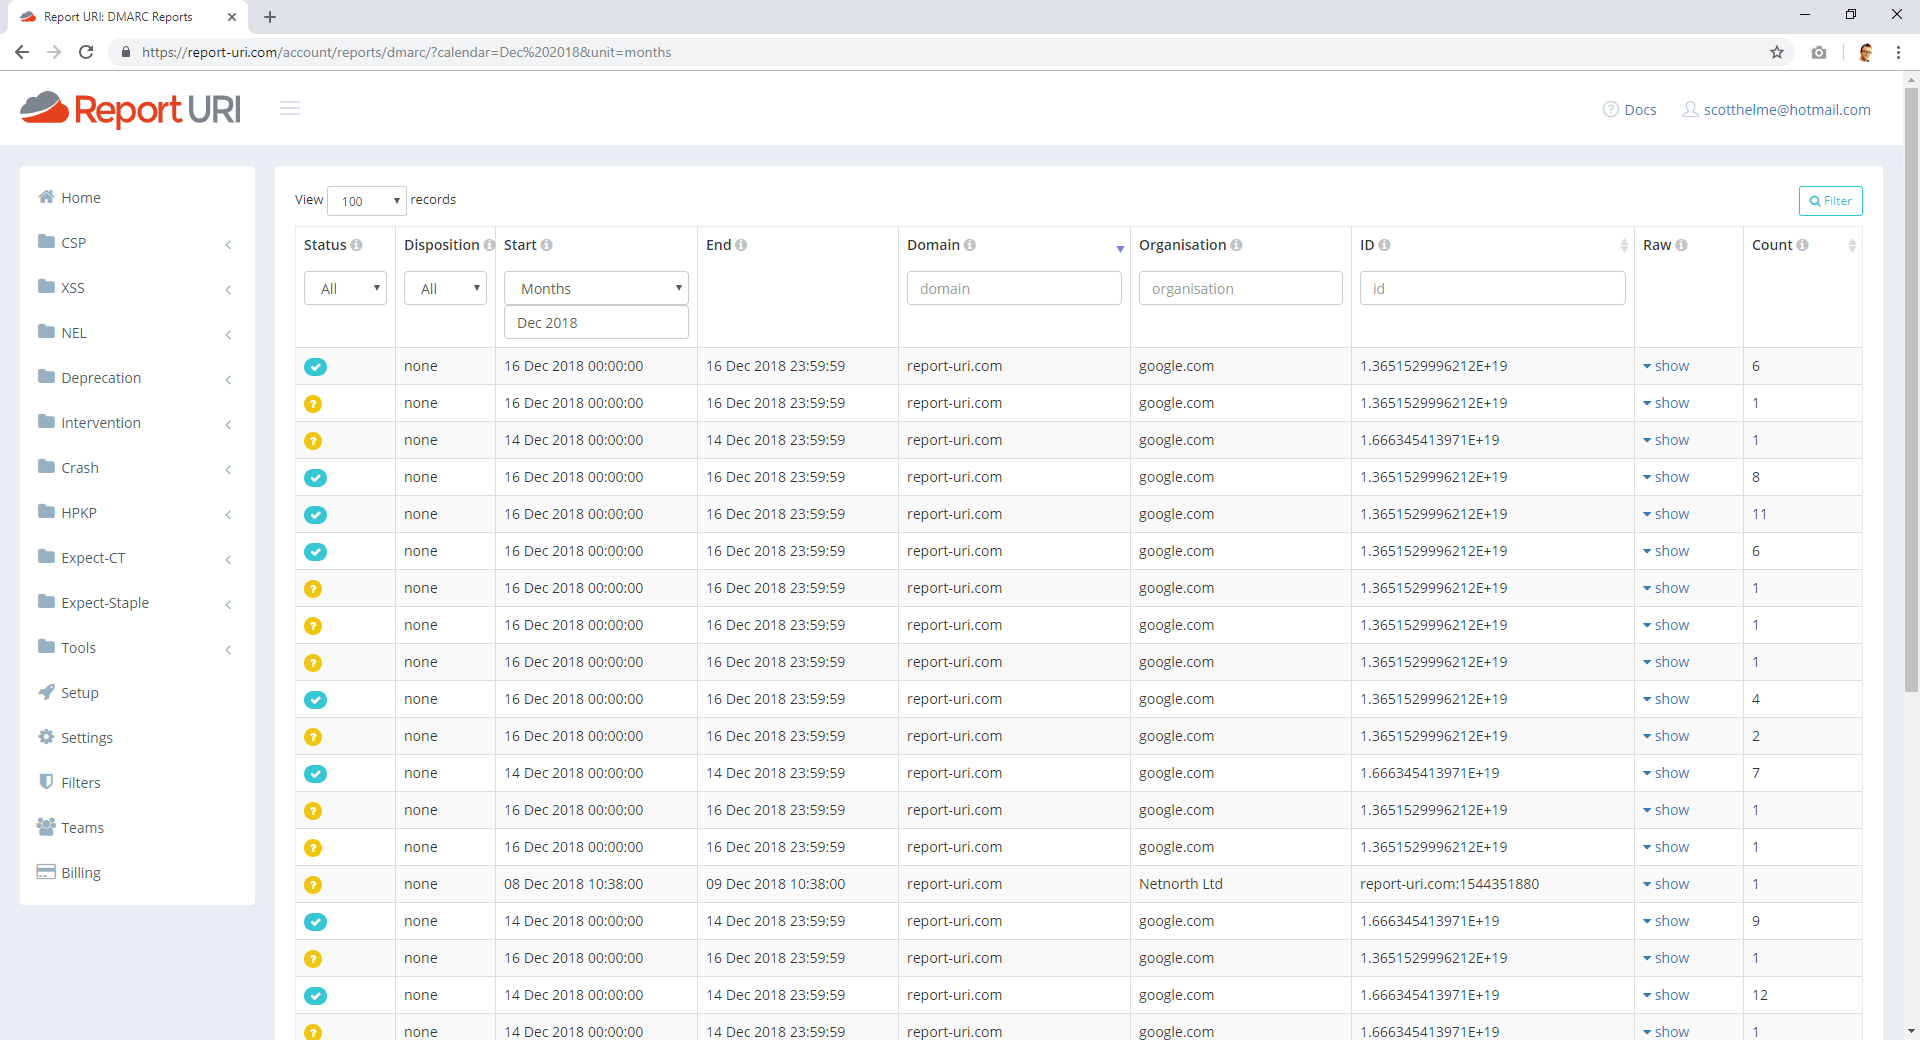 DMARC Reports view